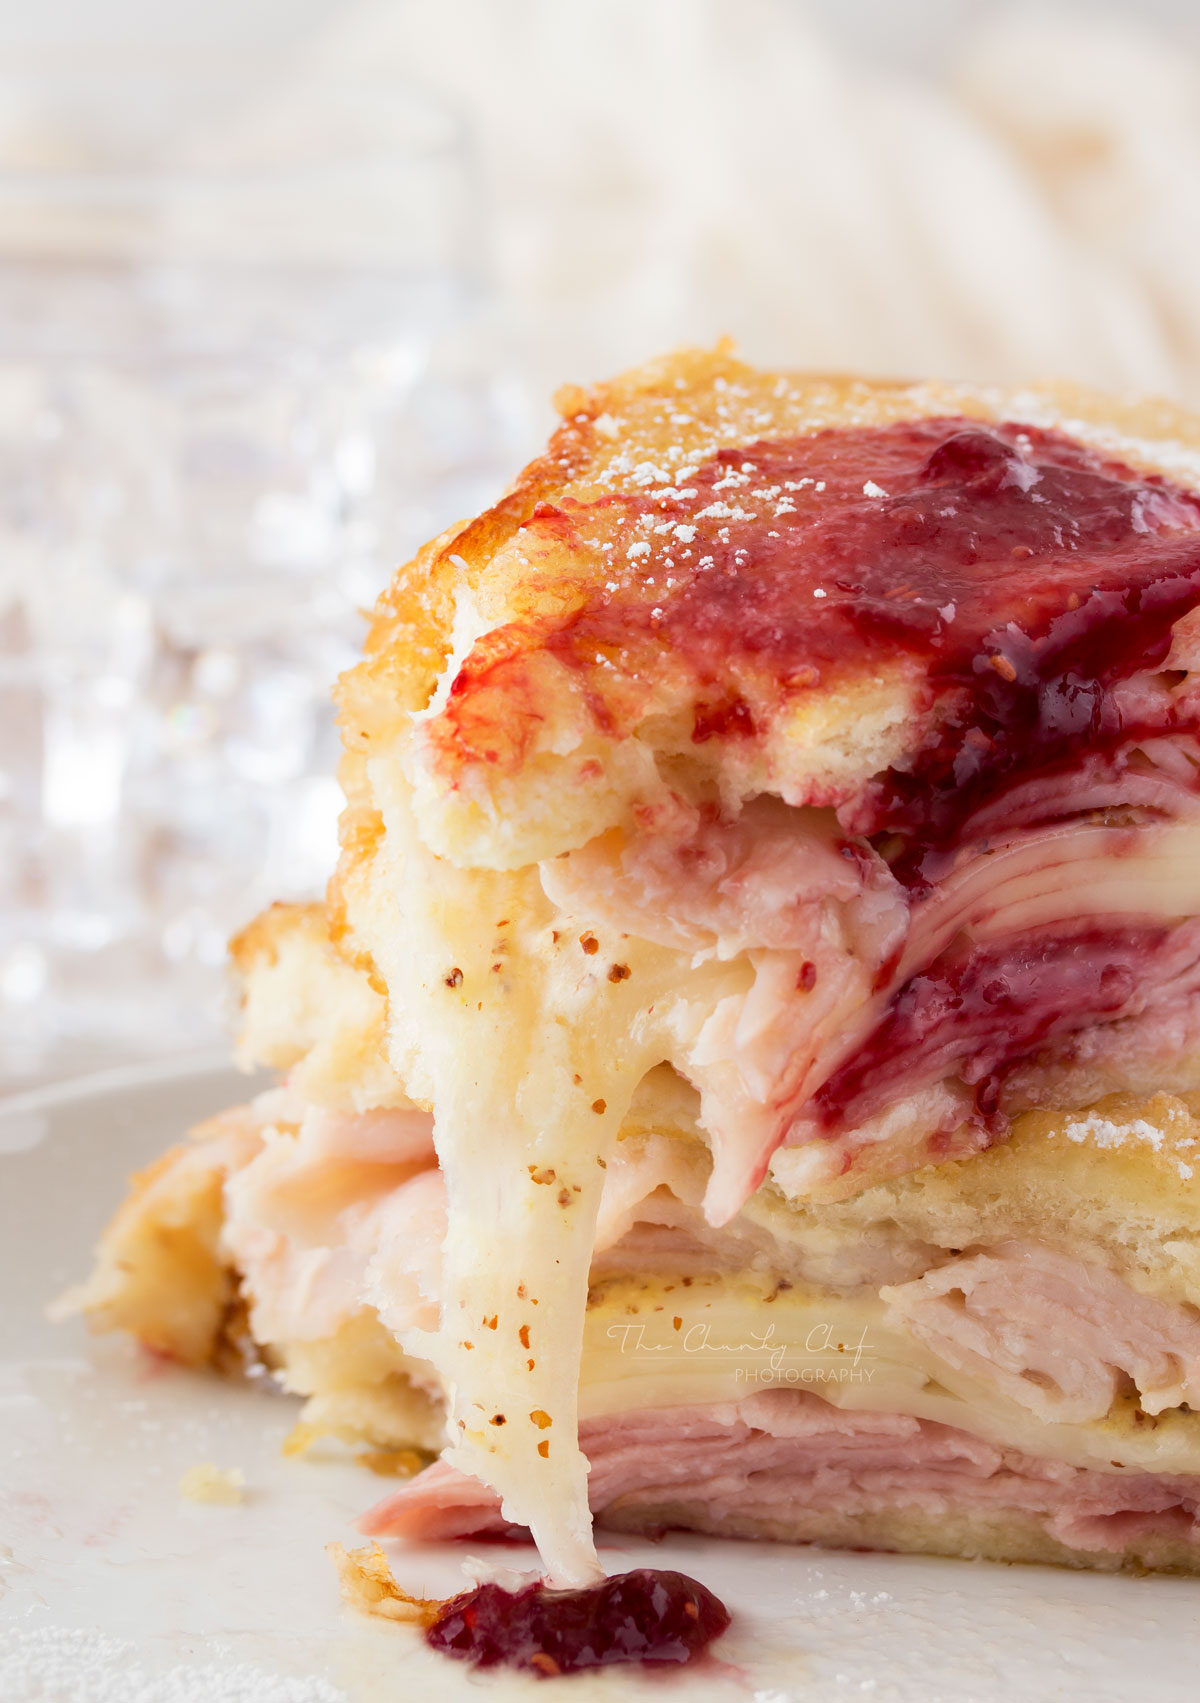 This monte cristo sandwich has the perfect balance of sweet and savory.